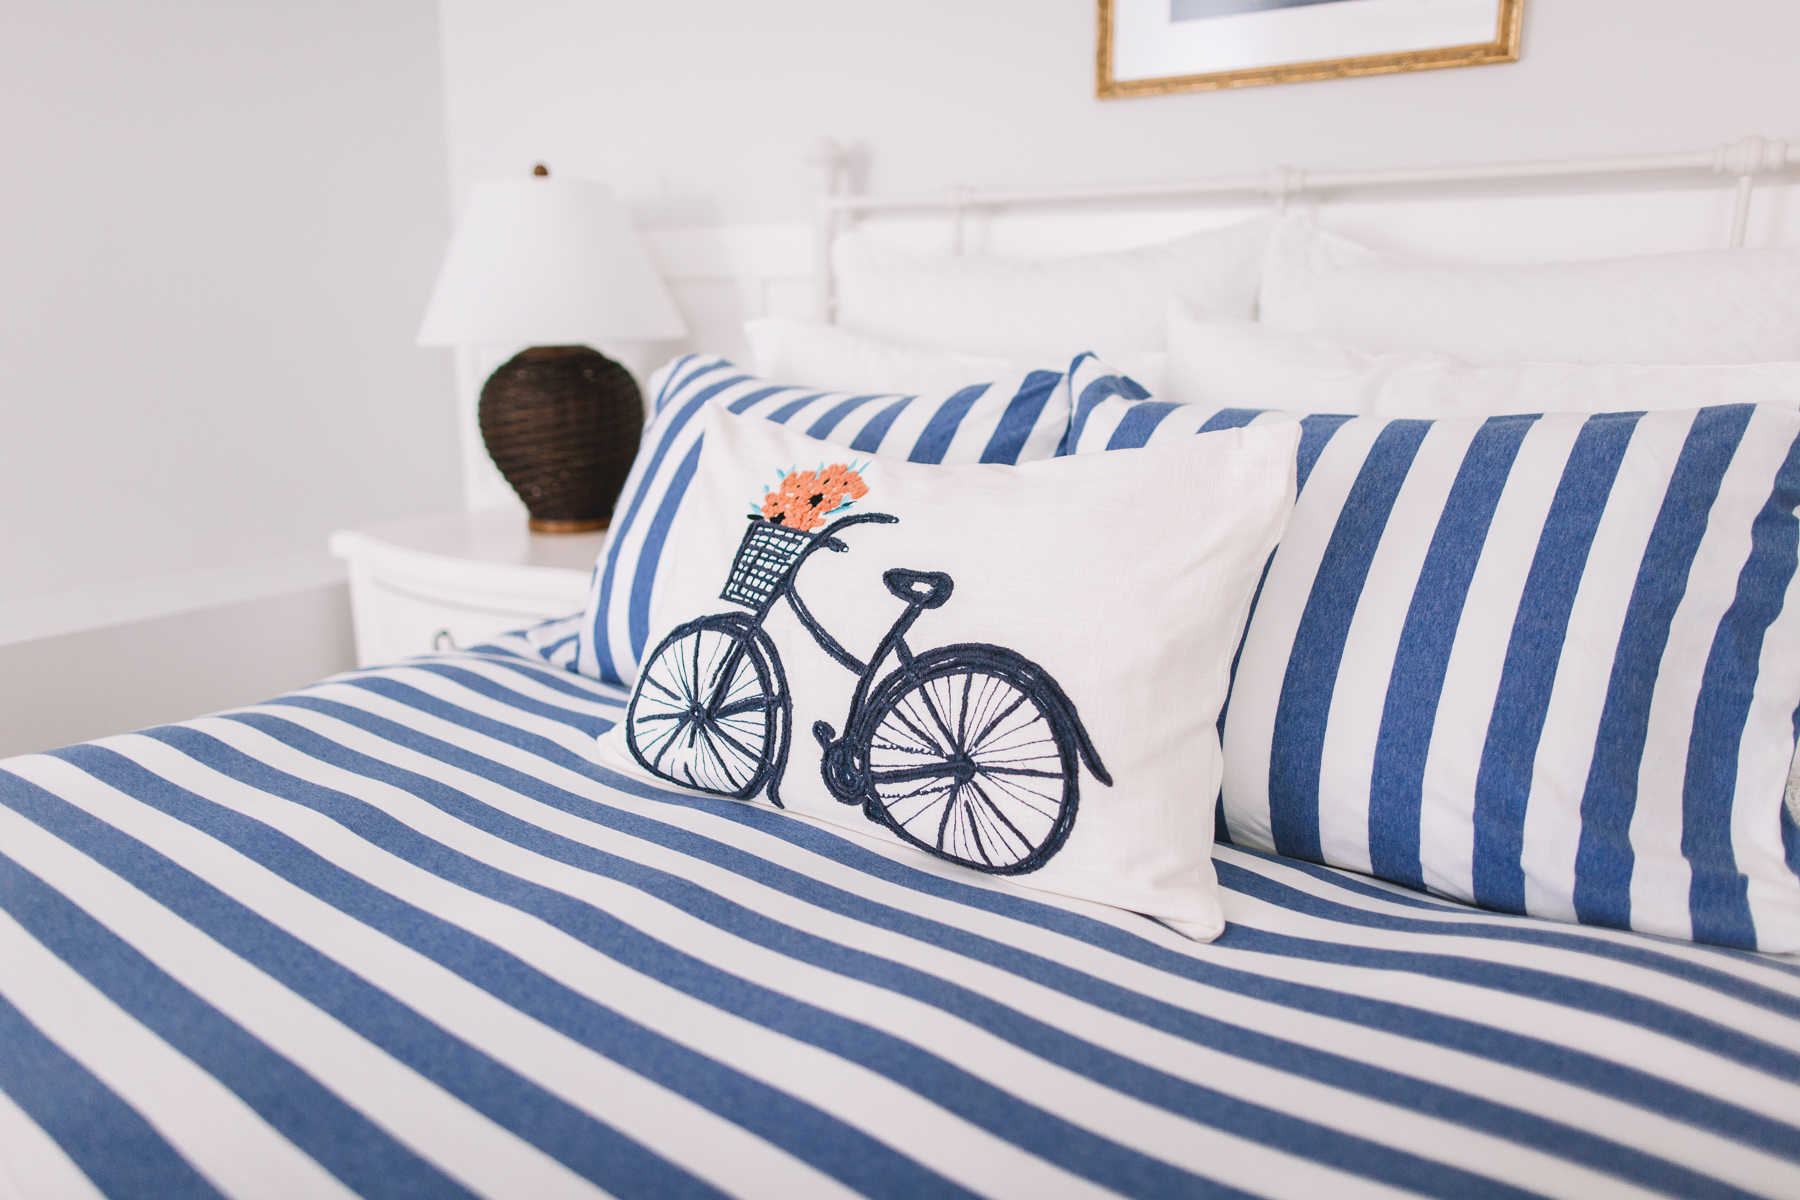 "Preppy Bedding - Company Store Awning Stripe Duvet Cover and Shams; Embroidered Bicycle Pillow; ""Enjoy"" Pillow; Flannel Lace Sheets and Pillowcases; Basket-Weave Euro Shams; Softest Fleece Throw Blanket; Ashby Floral Linen Fitted Sheet, Top Sheet, Pillow Cases and Euro Shams; Best Down Pillows; Firmest Pillows; Waterproof Mattress Pad; Oversized, Extra-Warm Down Comforter"